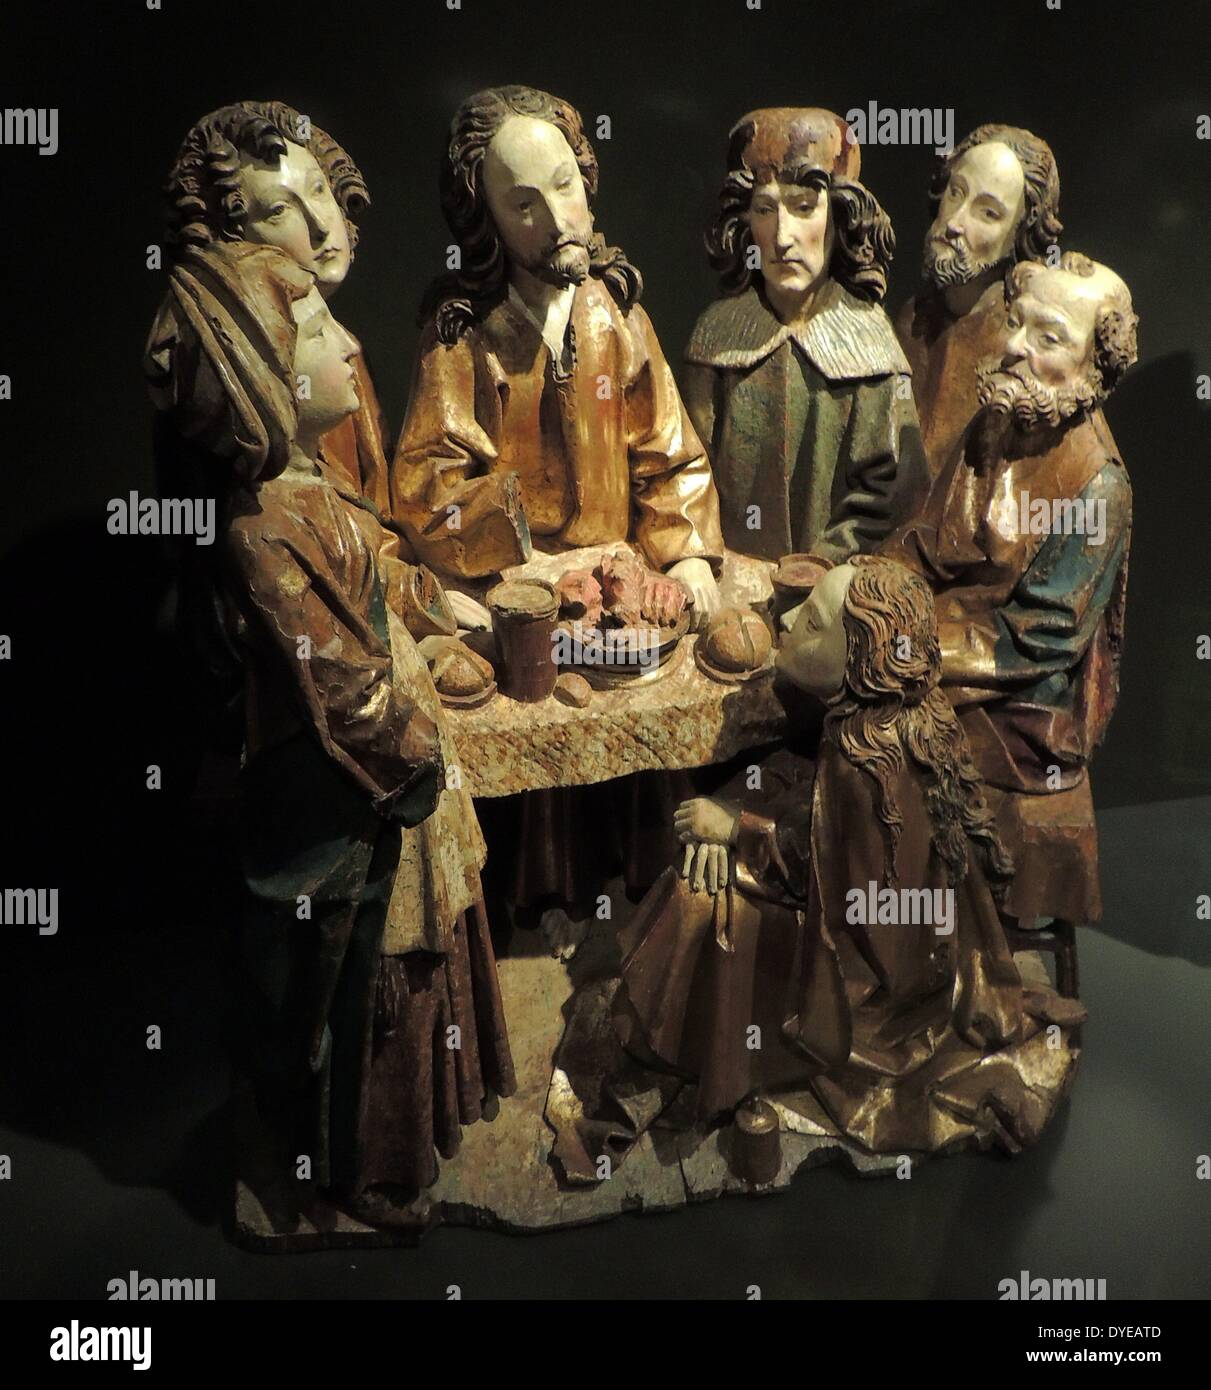 Christ in the House of Mary and Martha. The Last Supper. The Supper at Emmaus. Ulm, c.1520. Stock Photo